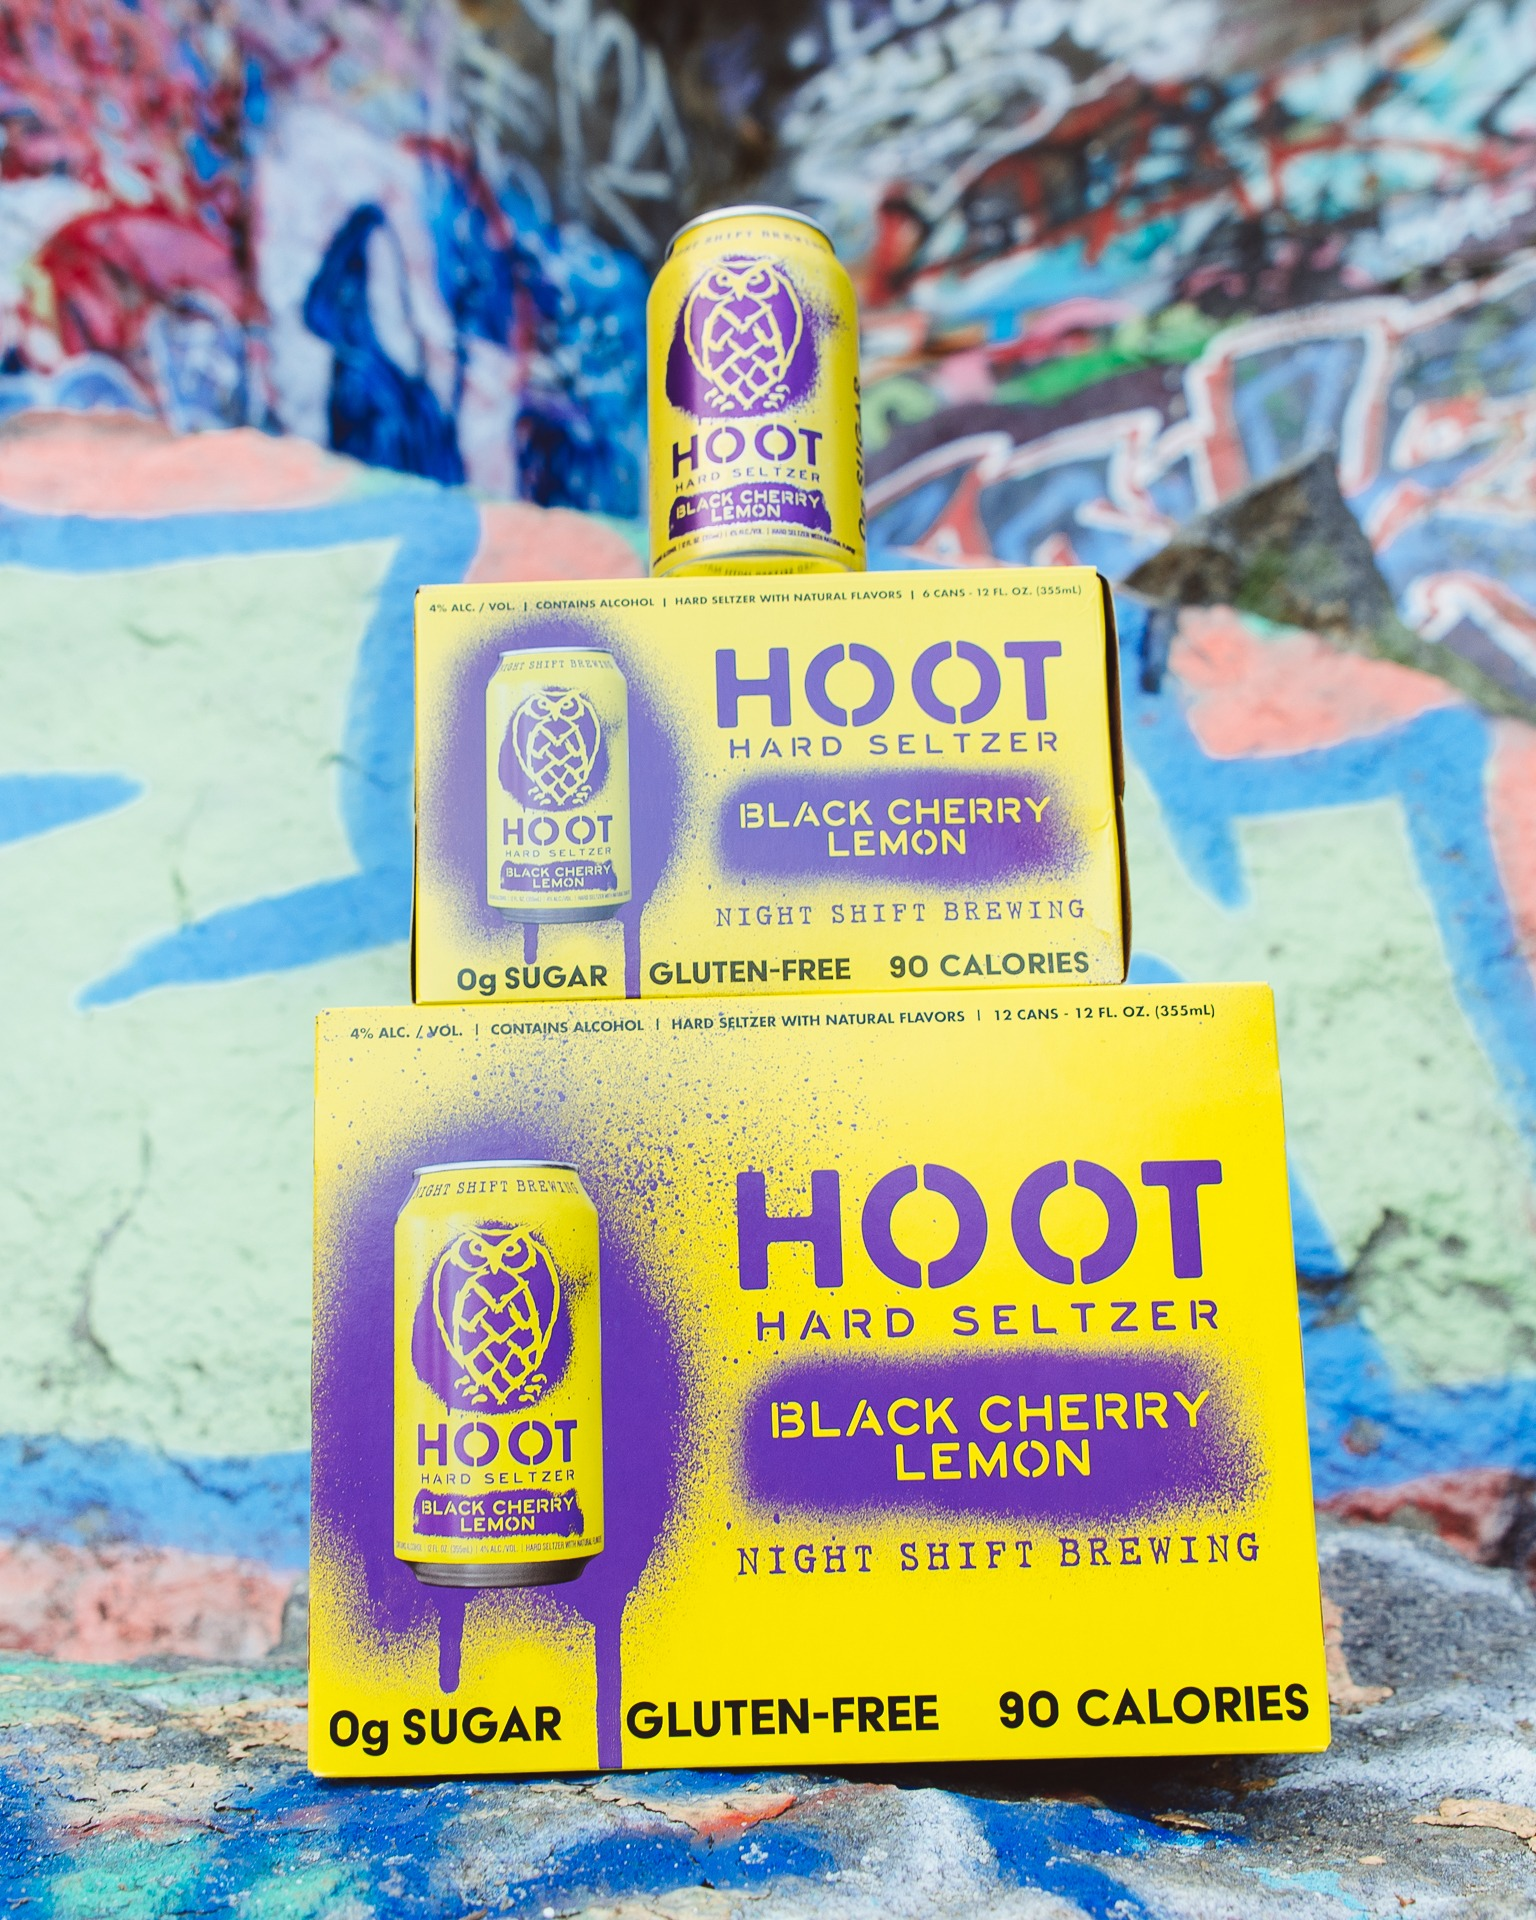 Cans of Hoot Hard Seltzer Black Cherry Lemon